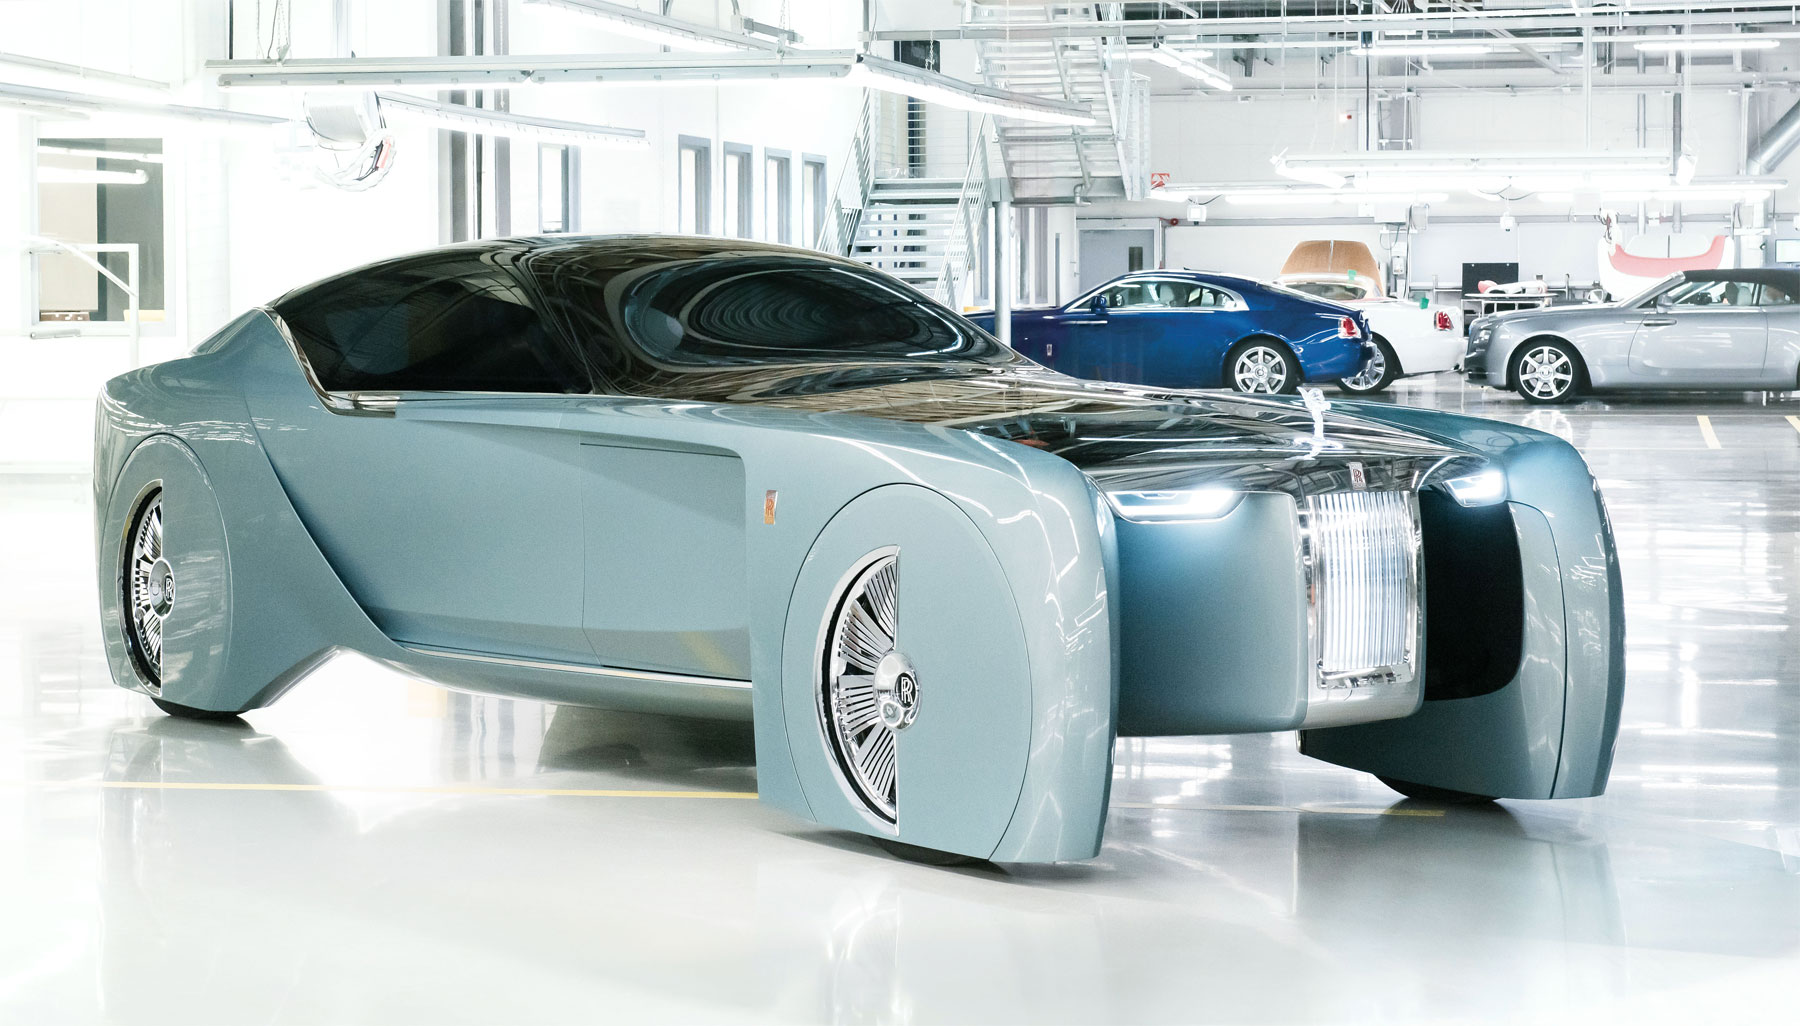 Rolls-Royce Motor Cars Offer A glimpse Of The Future With The 103EX